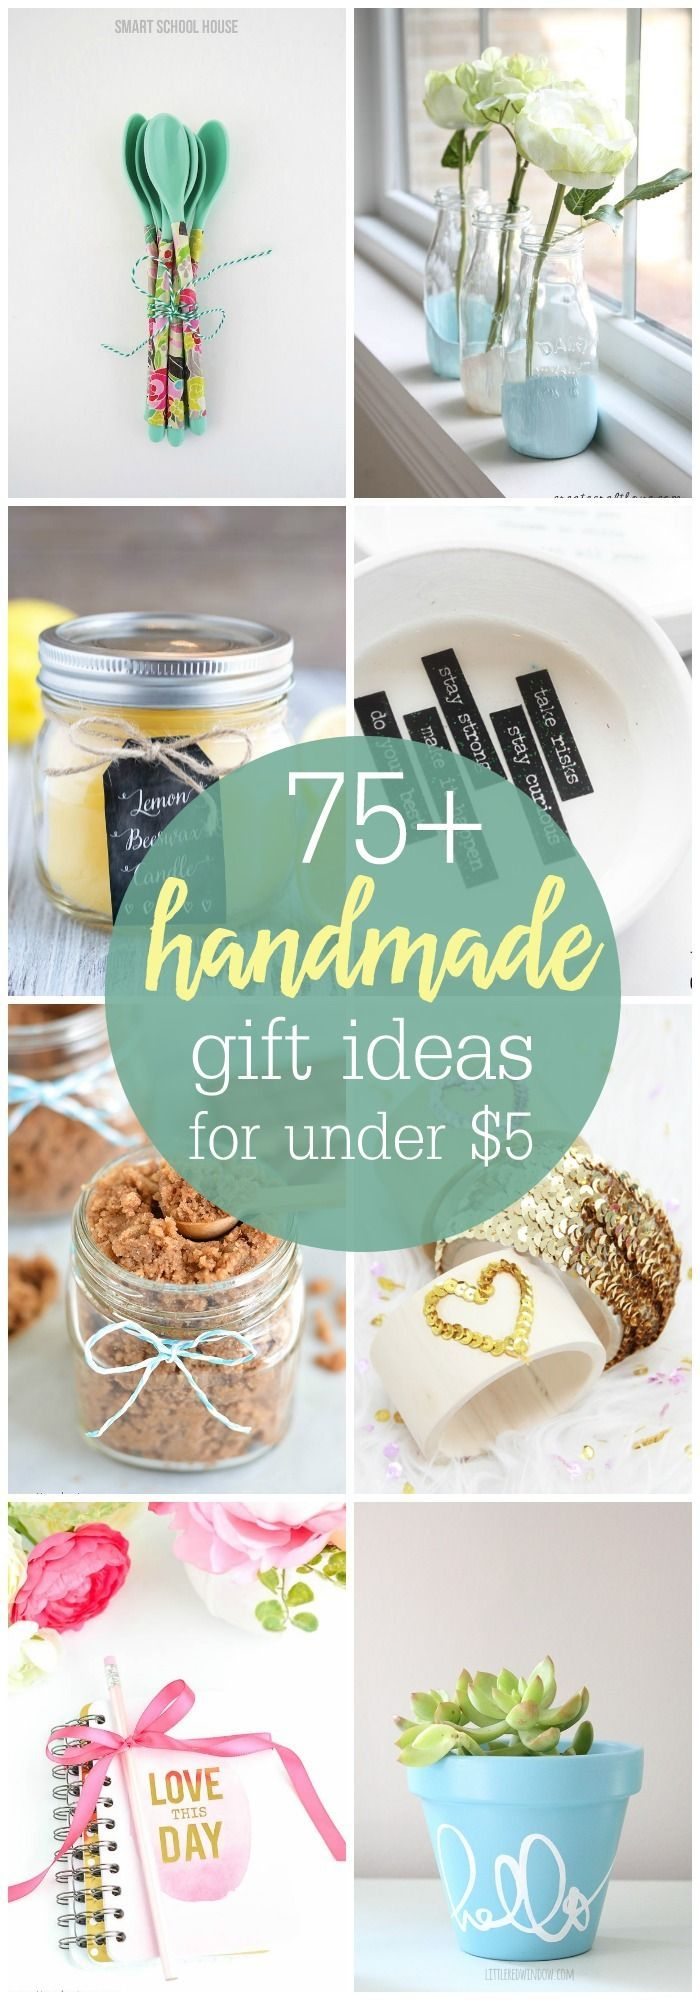 DIY #giftideas | gift ideas | Pinterest | Gift, Christmas gifts and ...